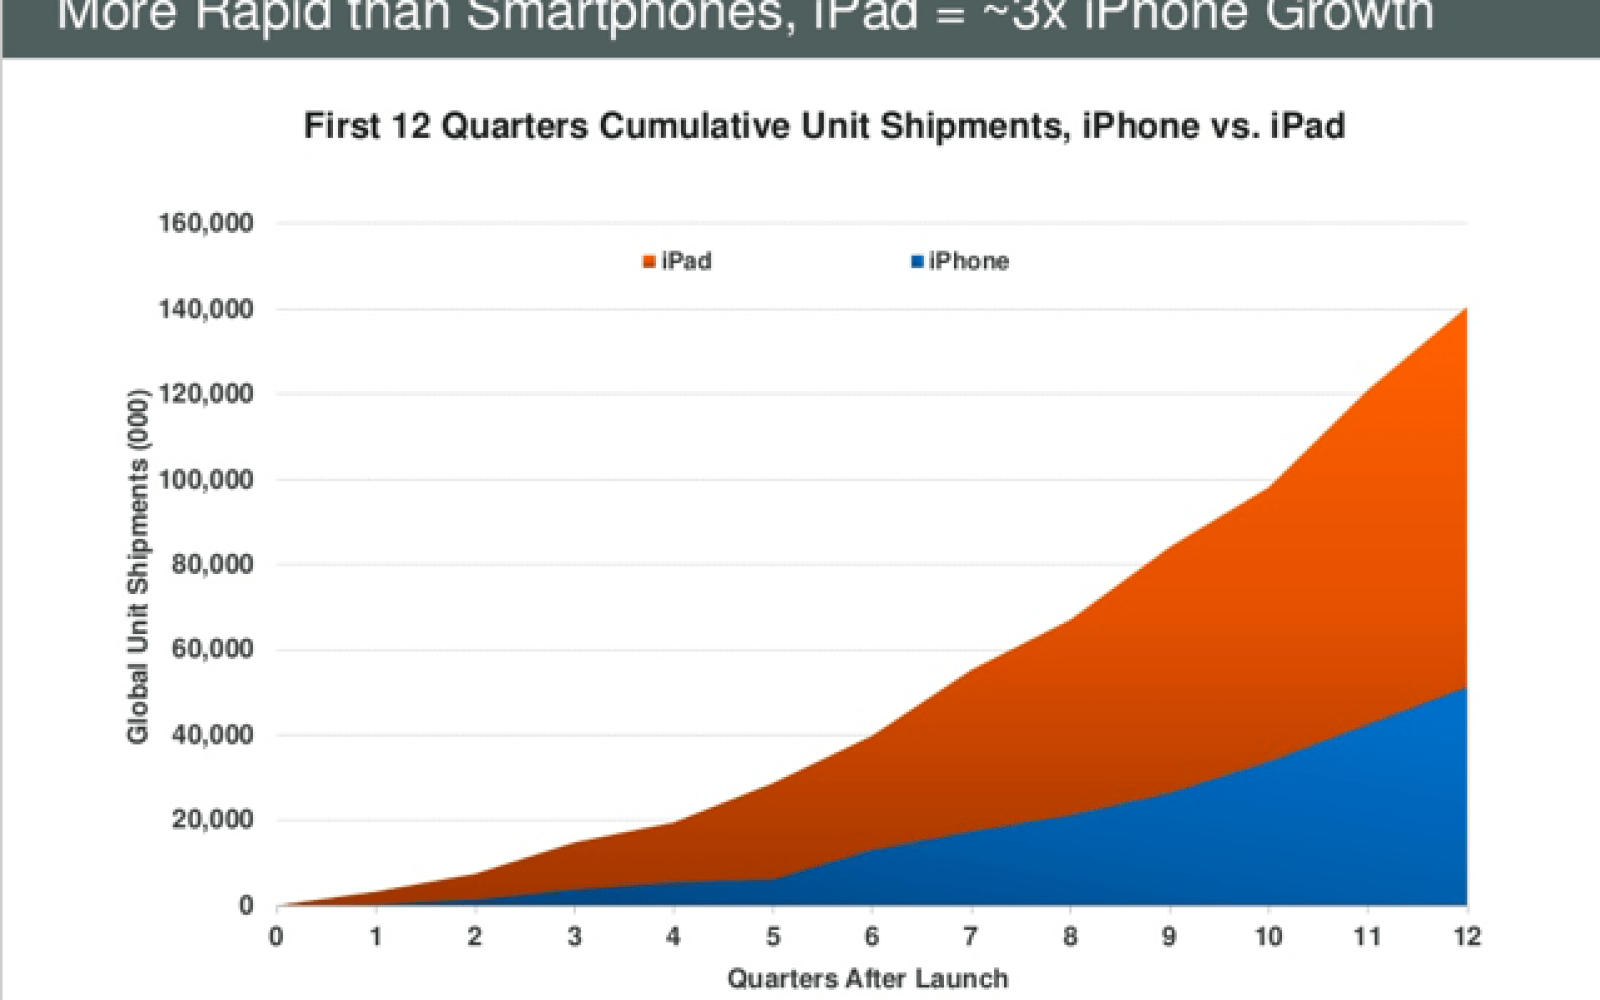 iPad sales grew three times faster than the iPhone